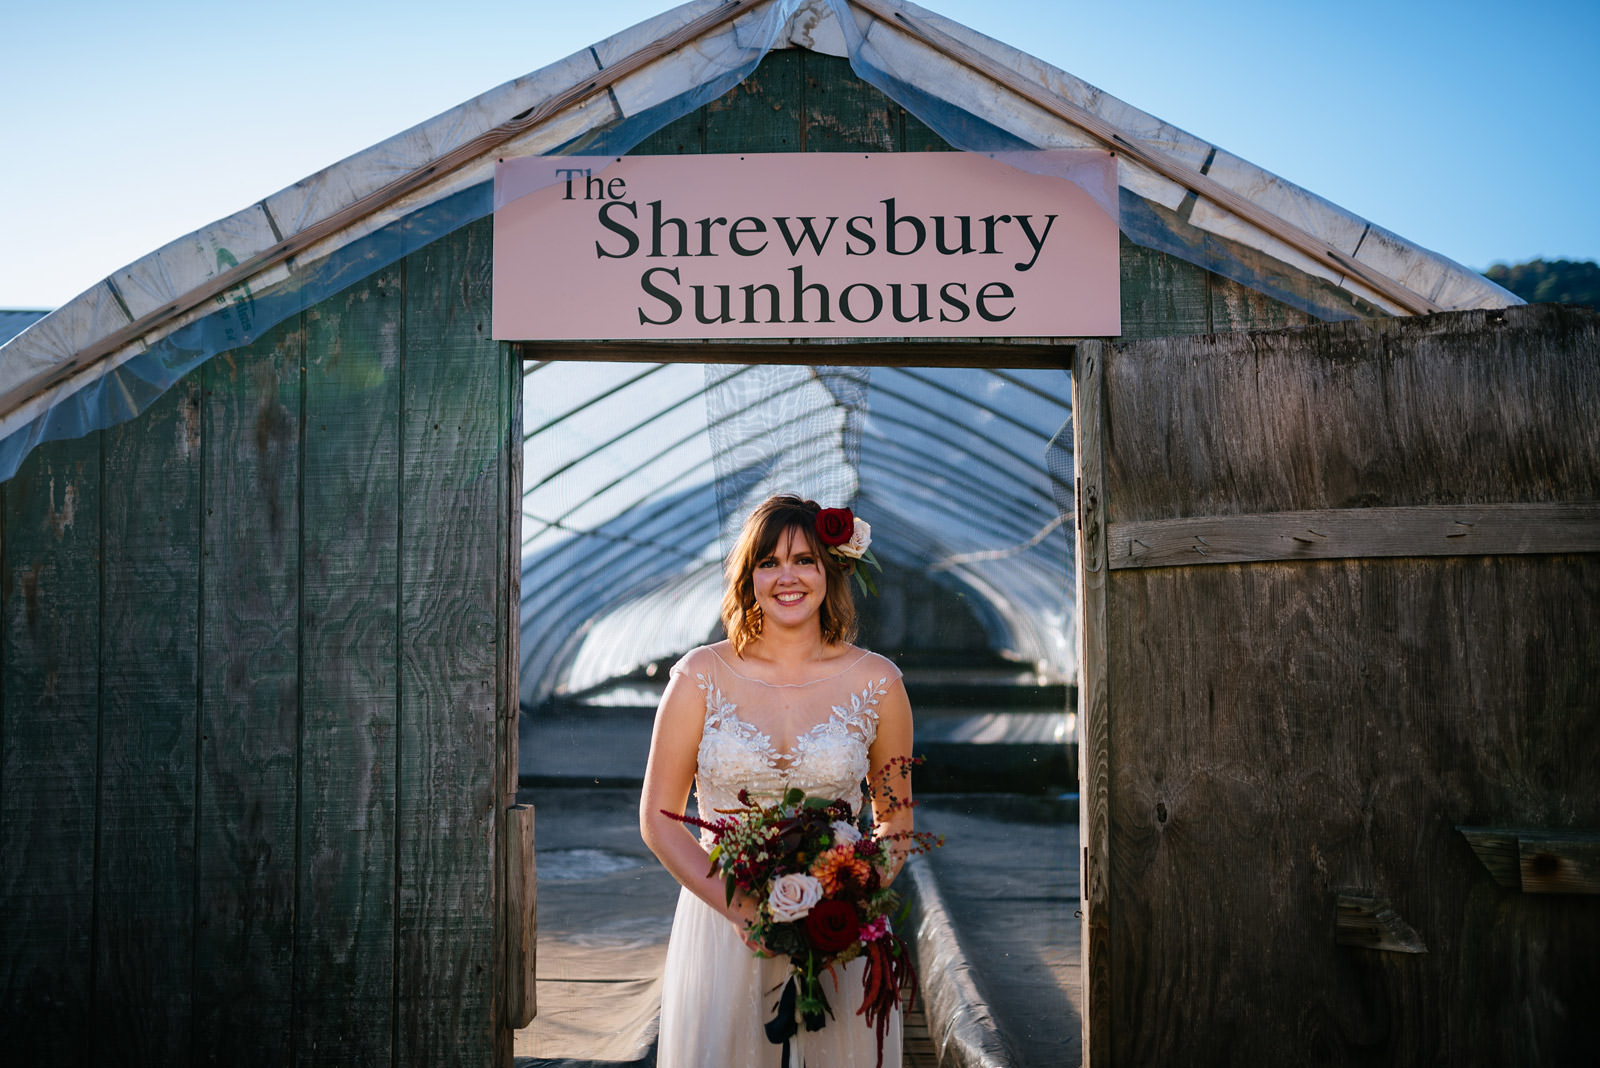 shrewsbury sunhouse jq dickinson bride